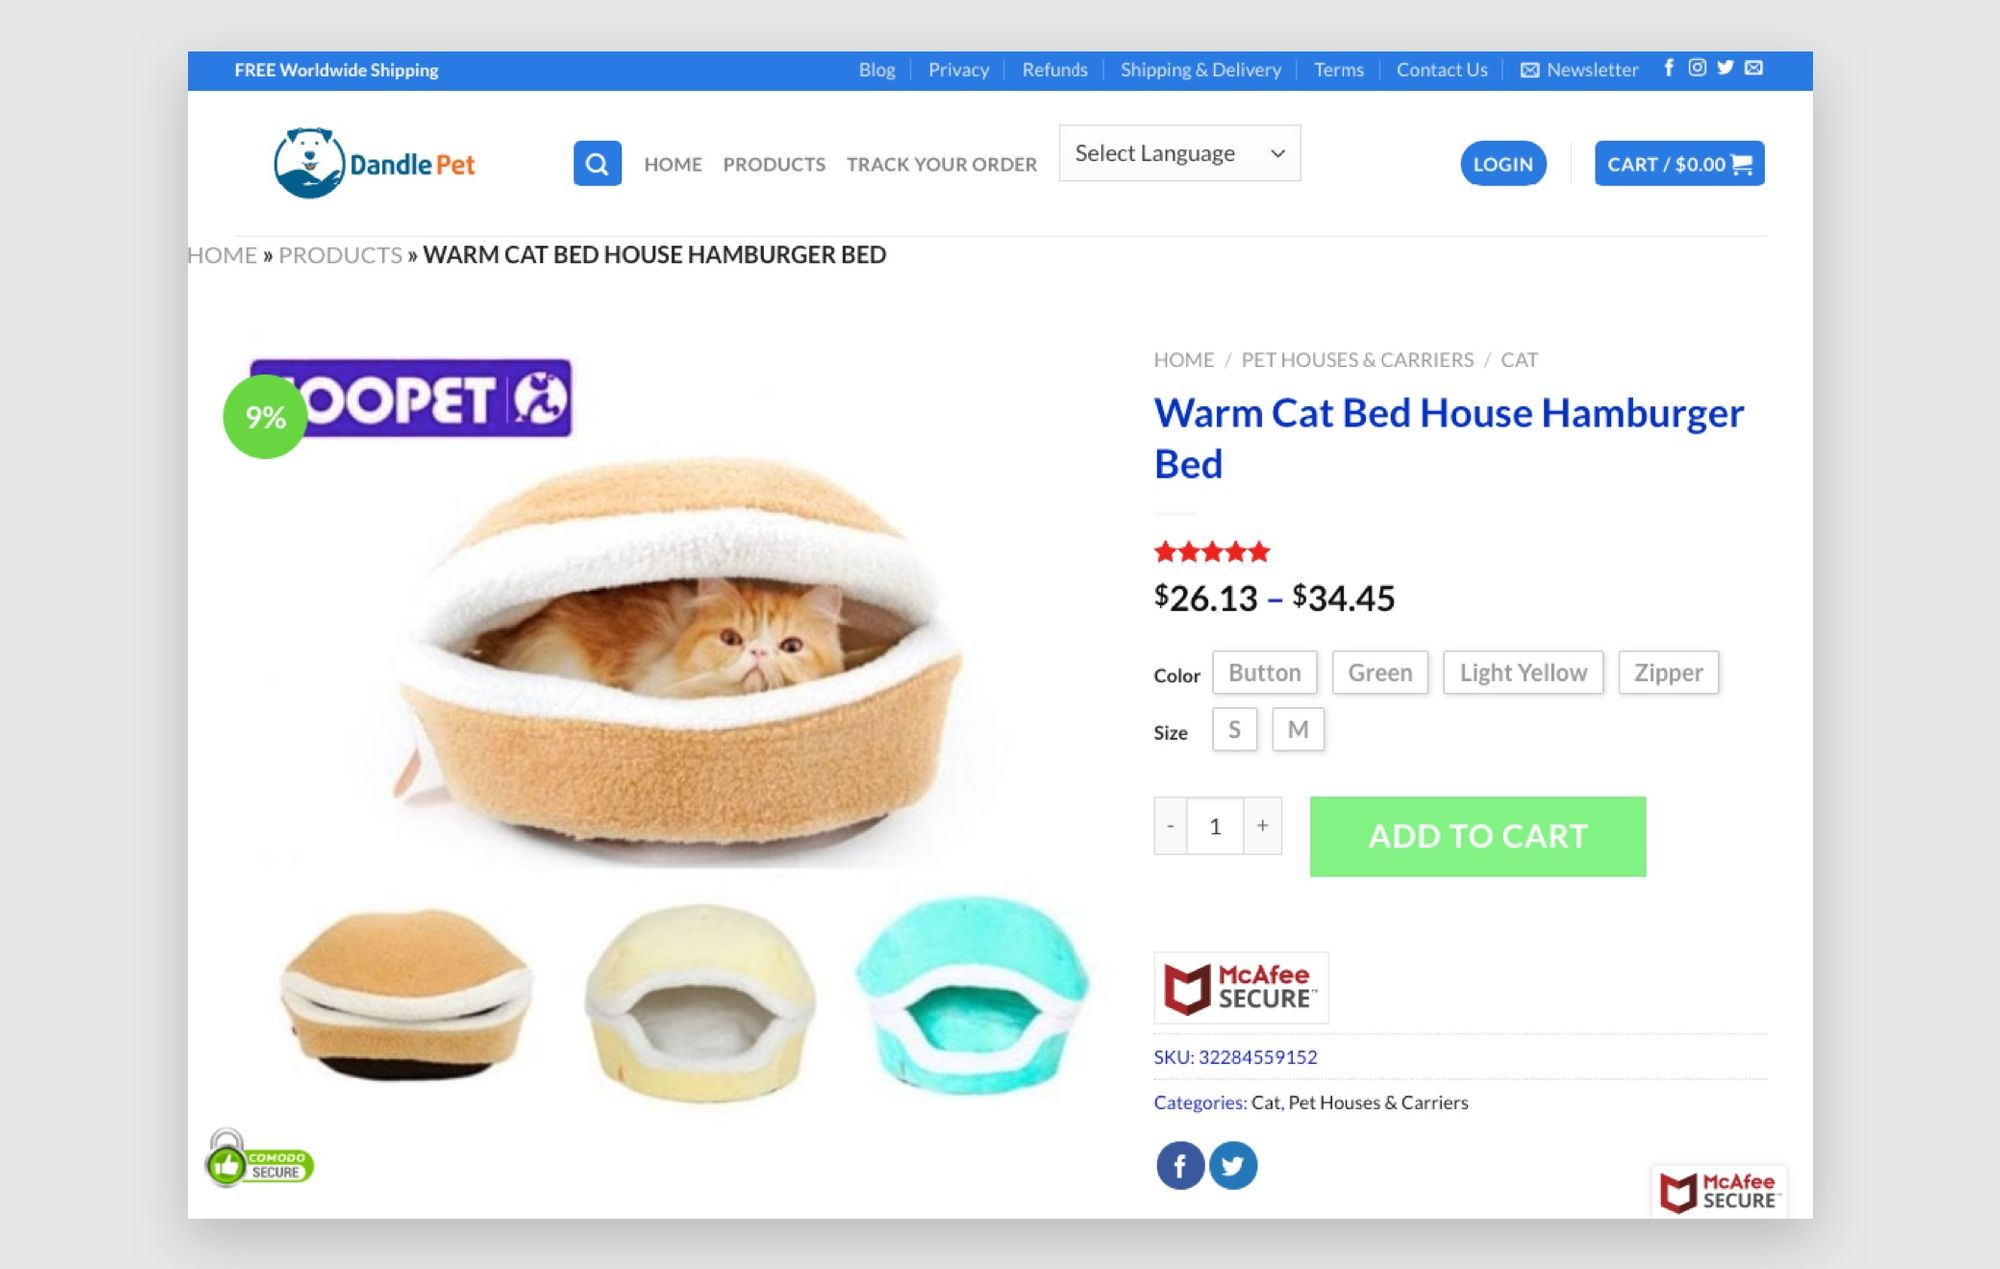 dandle-pet-product-page@2x